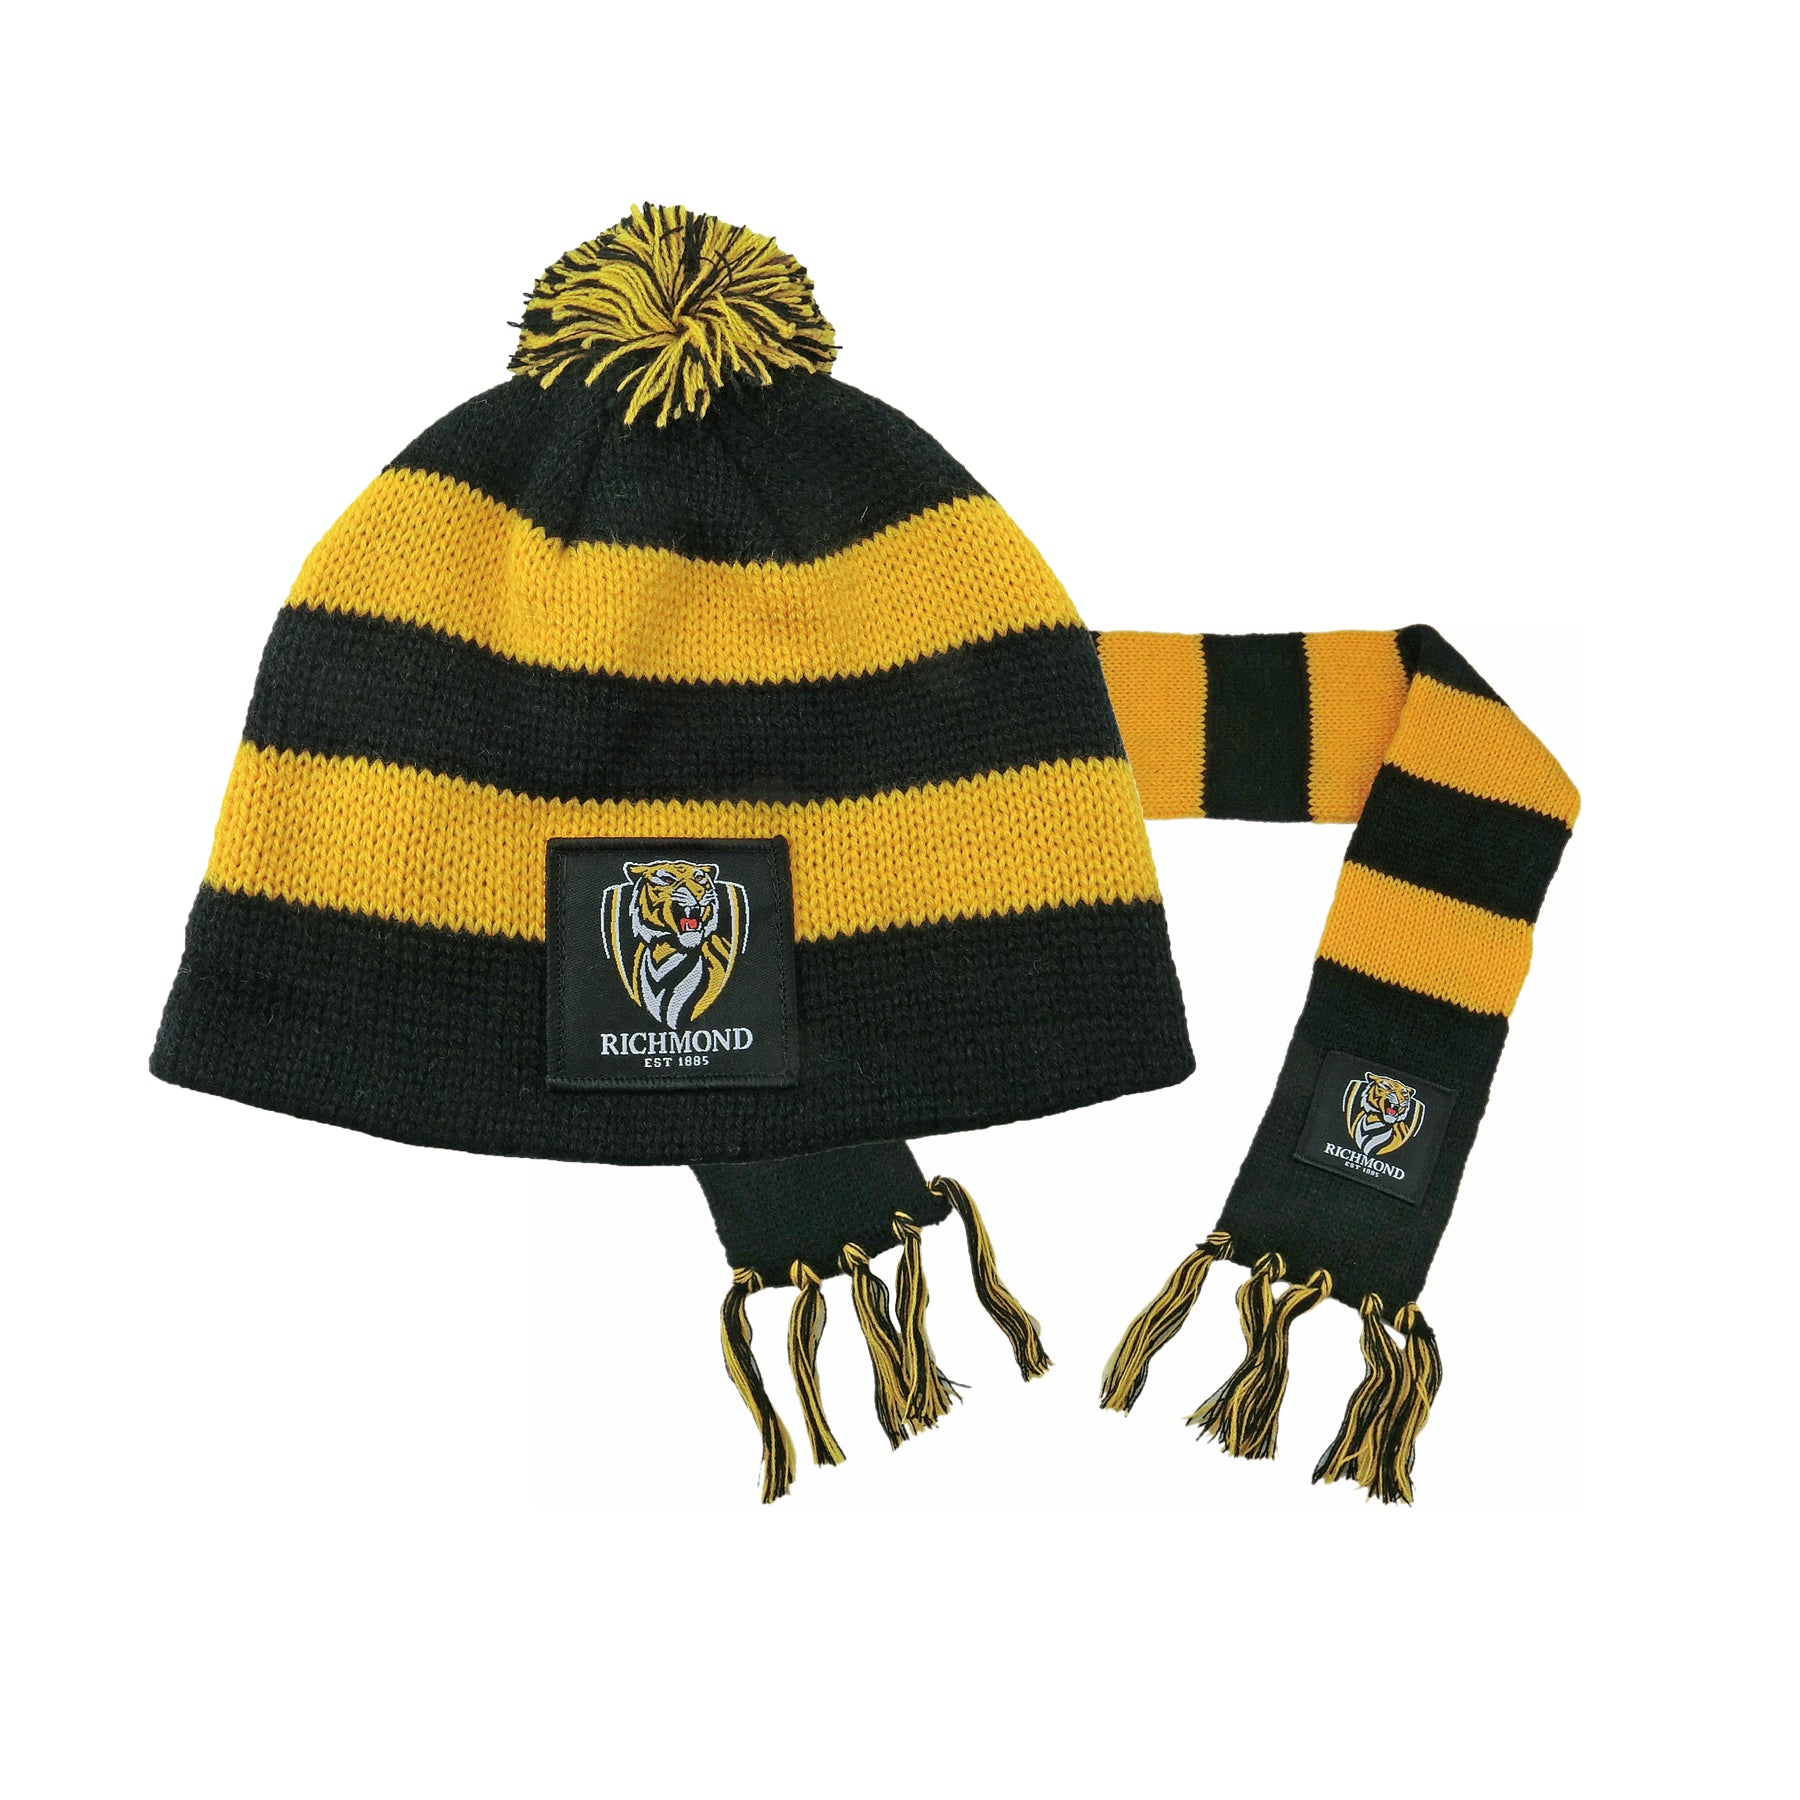 Richmond Tigers Baby Pack - Baby Scarf and Beanie